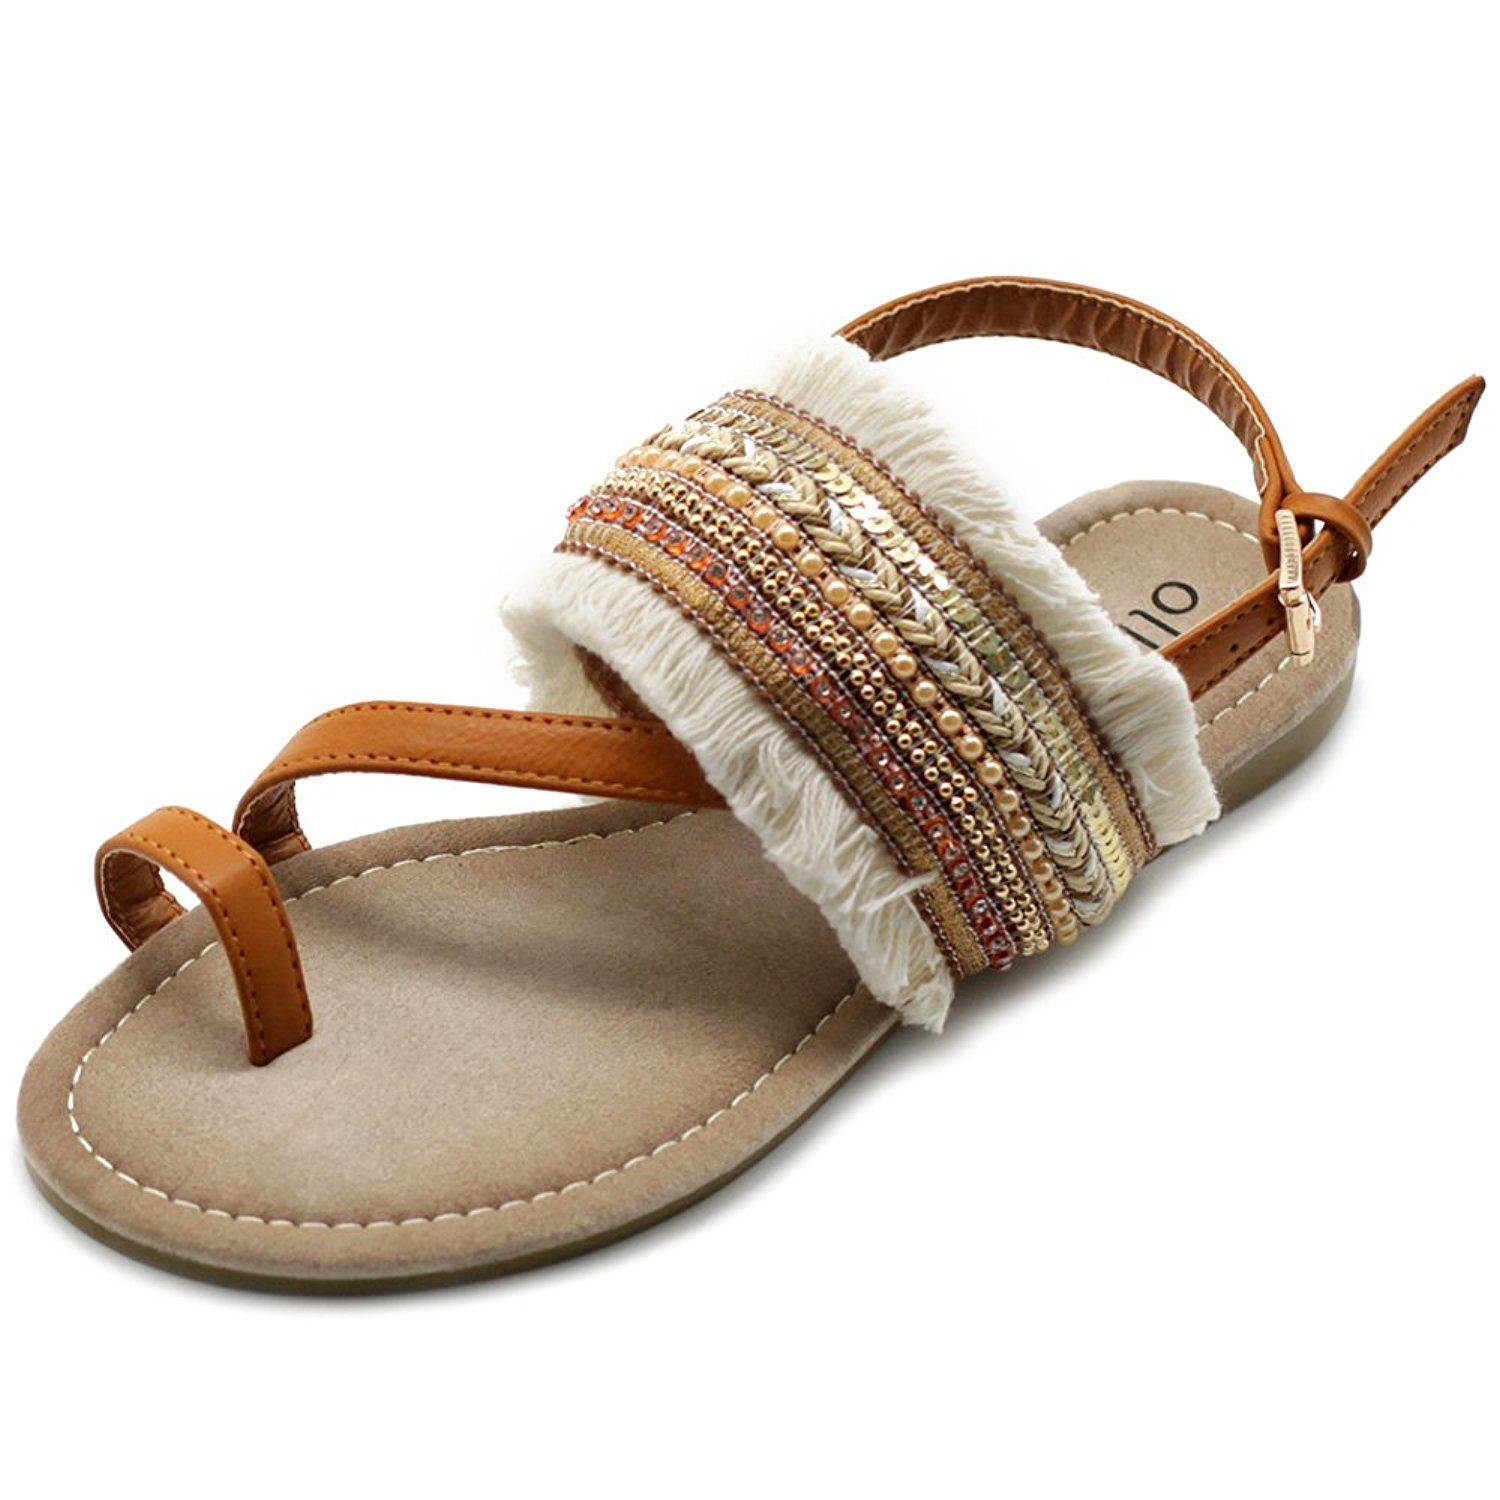 ec22ddd3e8711 Ollio Women s Shoes Ethnic Toe Ring Diagonal Strap Sling Back Boho Flat  Sandals    Click image for more details. (This is an affiliate link)   womensandle